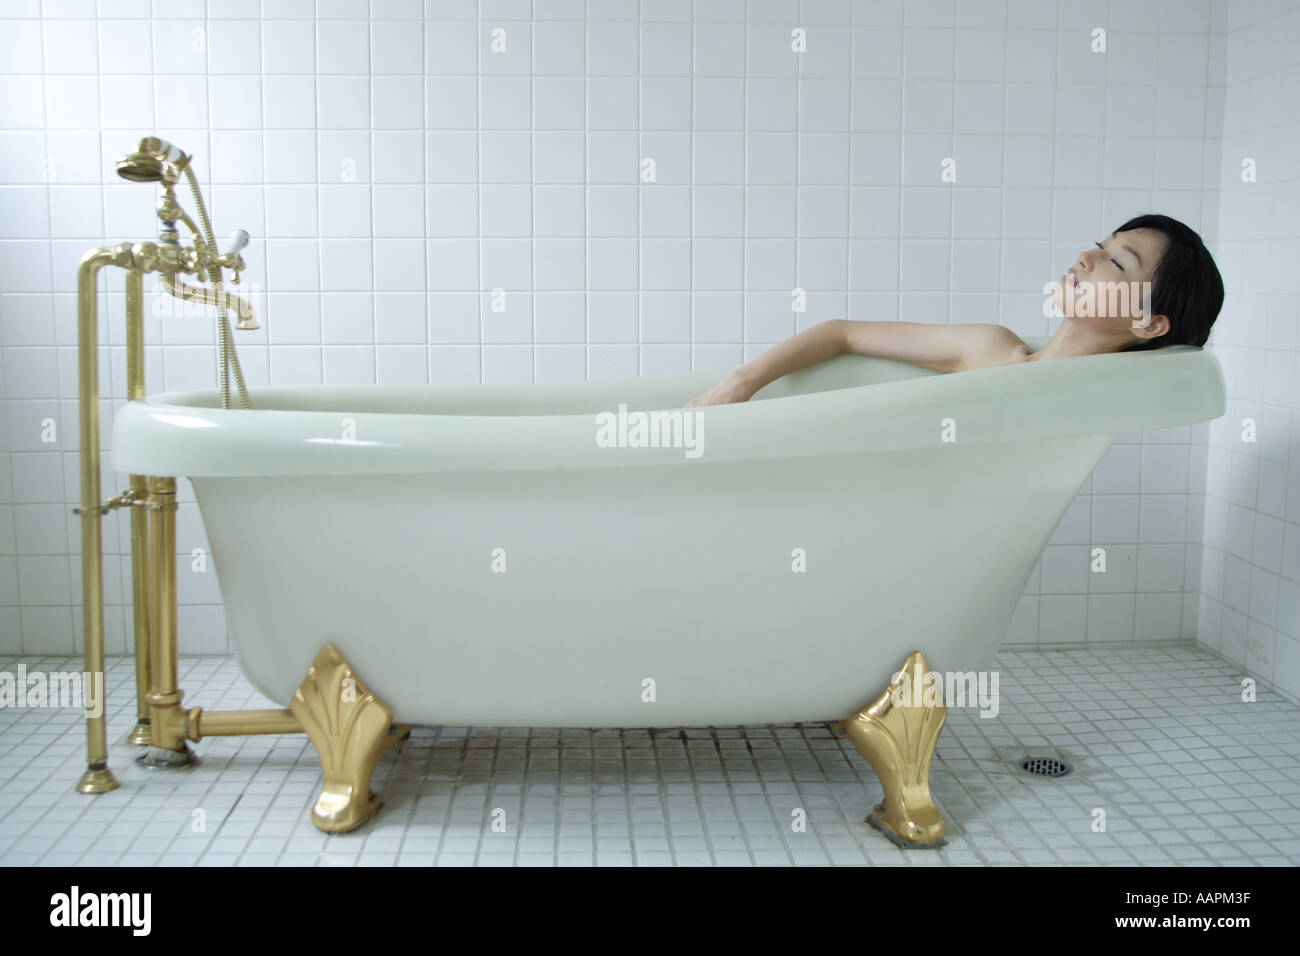 A young woman in bathtub, side view Stock Photo: 4140094 - Alamy